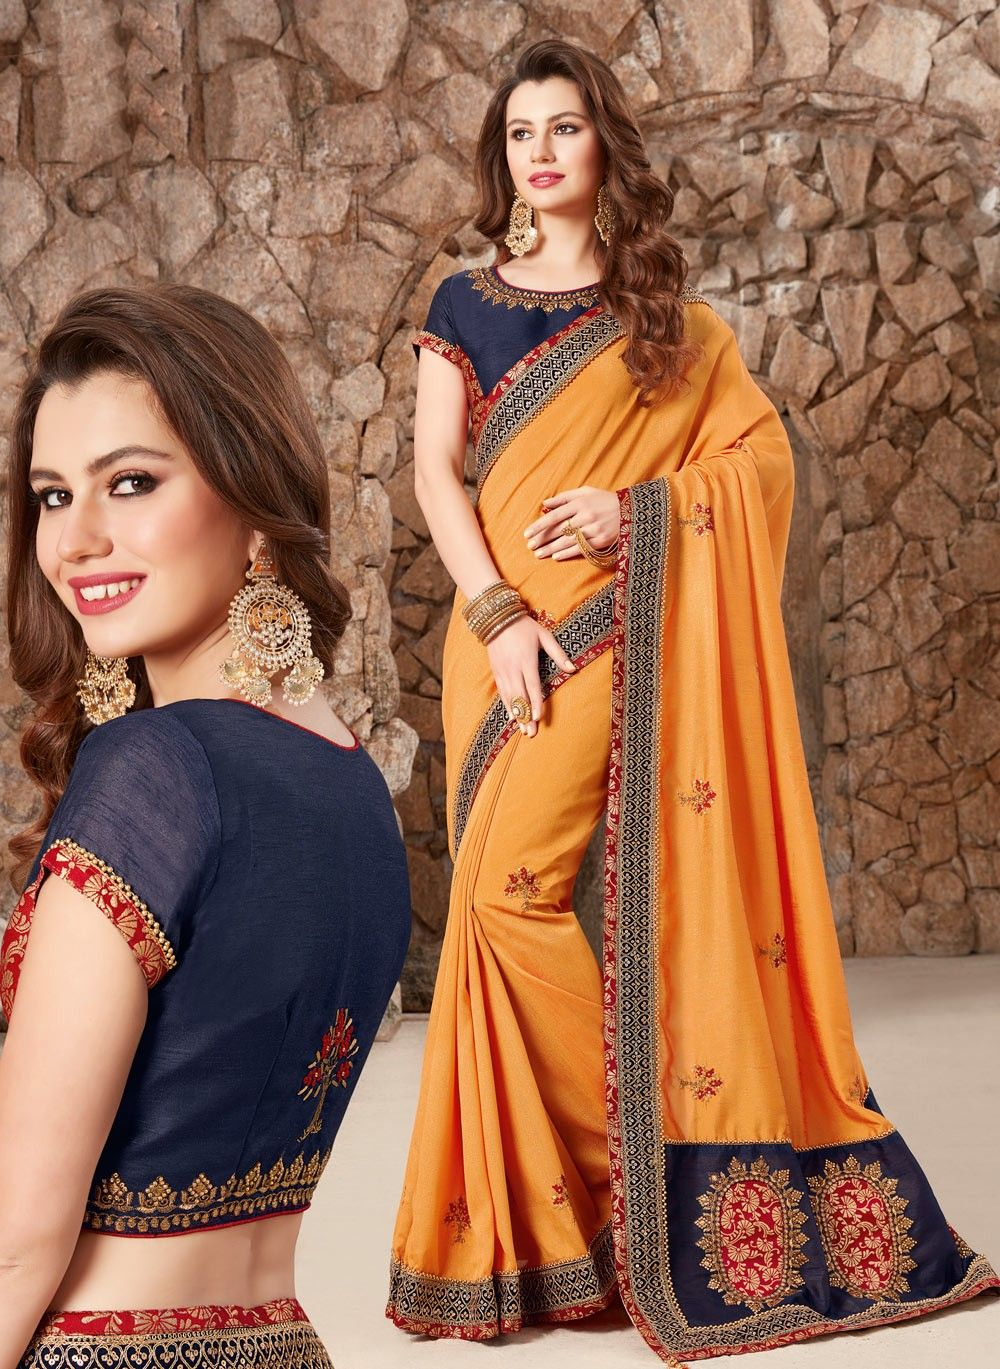 42f79183d5 Stylish Indian Latest Saree Designs 2019 With Beautiful Blouse Patterns